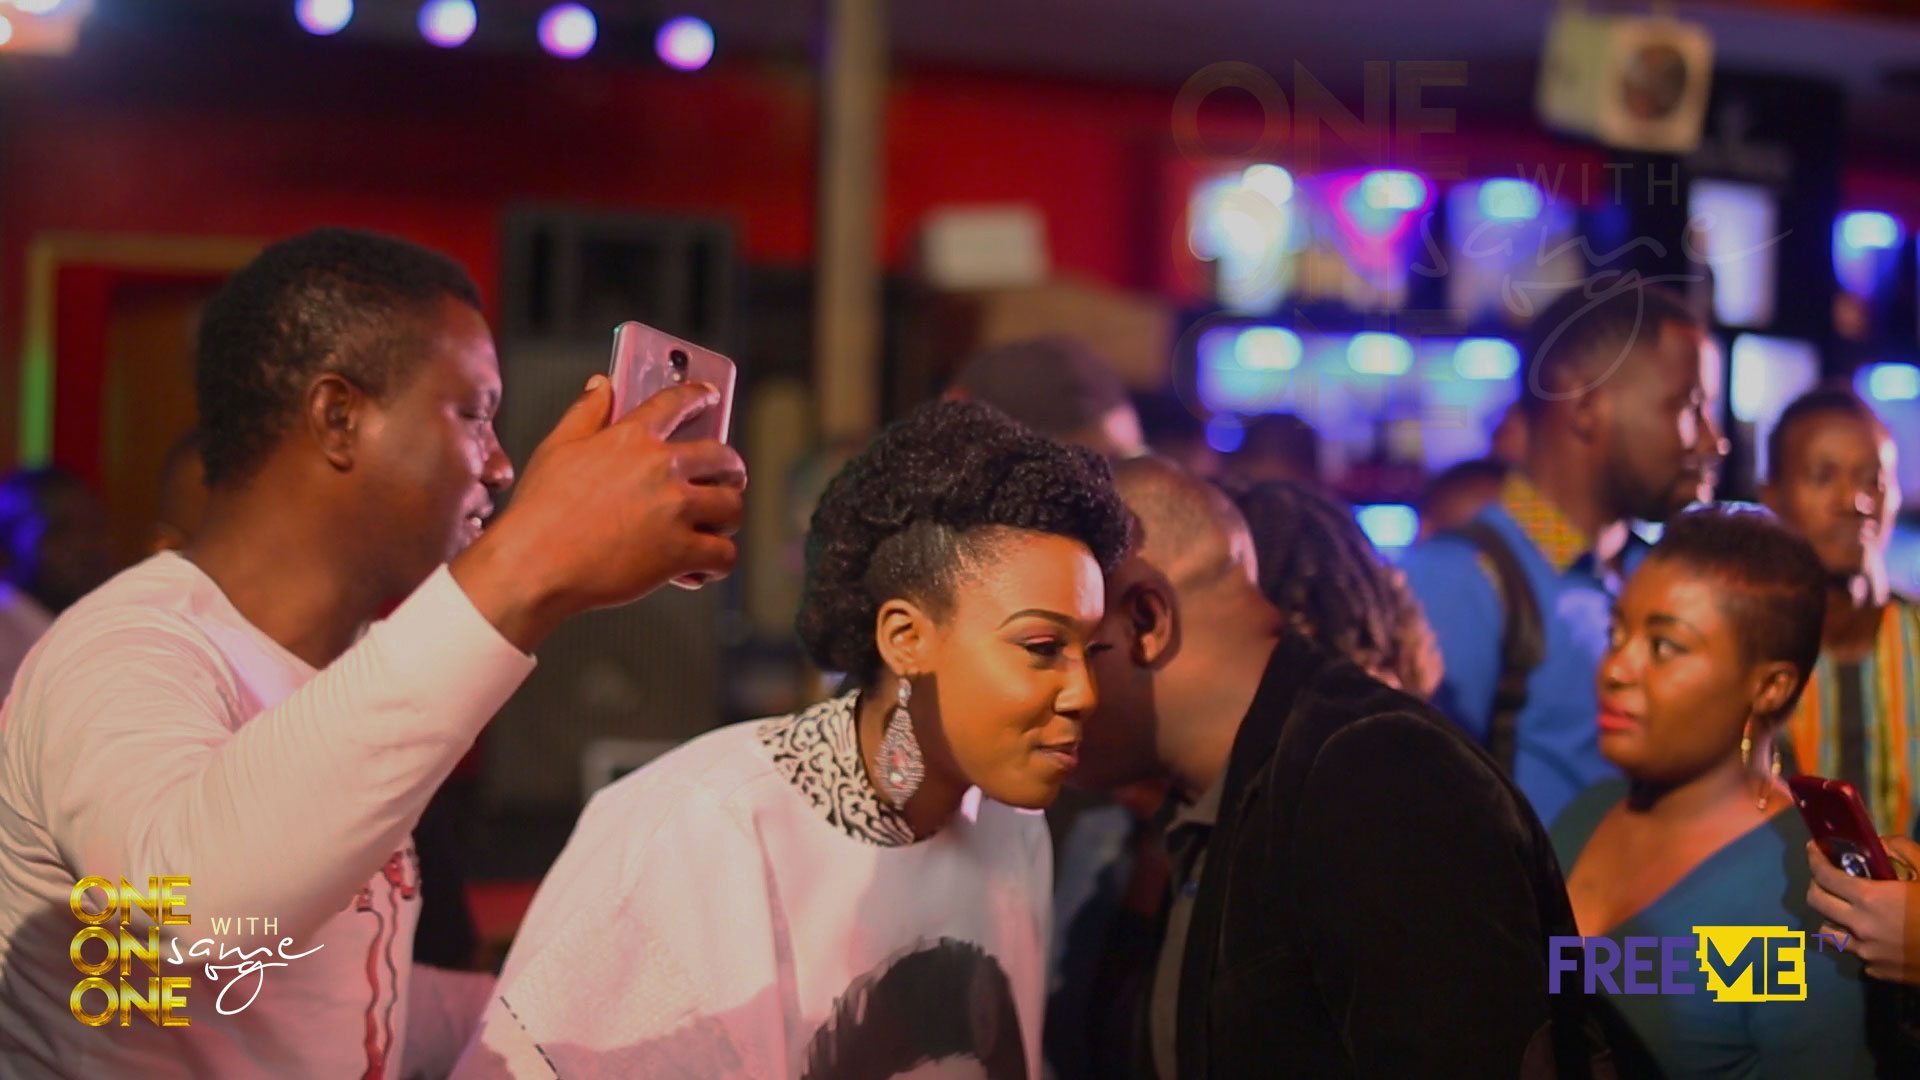 Photos from ONE ON ONE with Same OG [@its_sameog] (7)